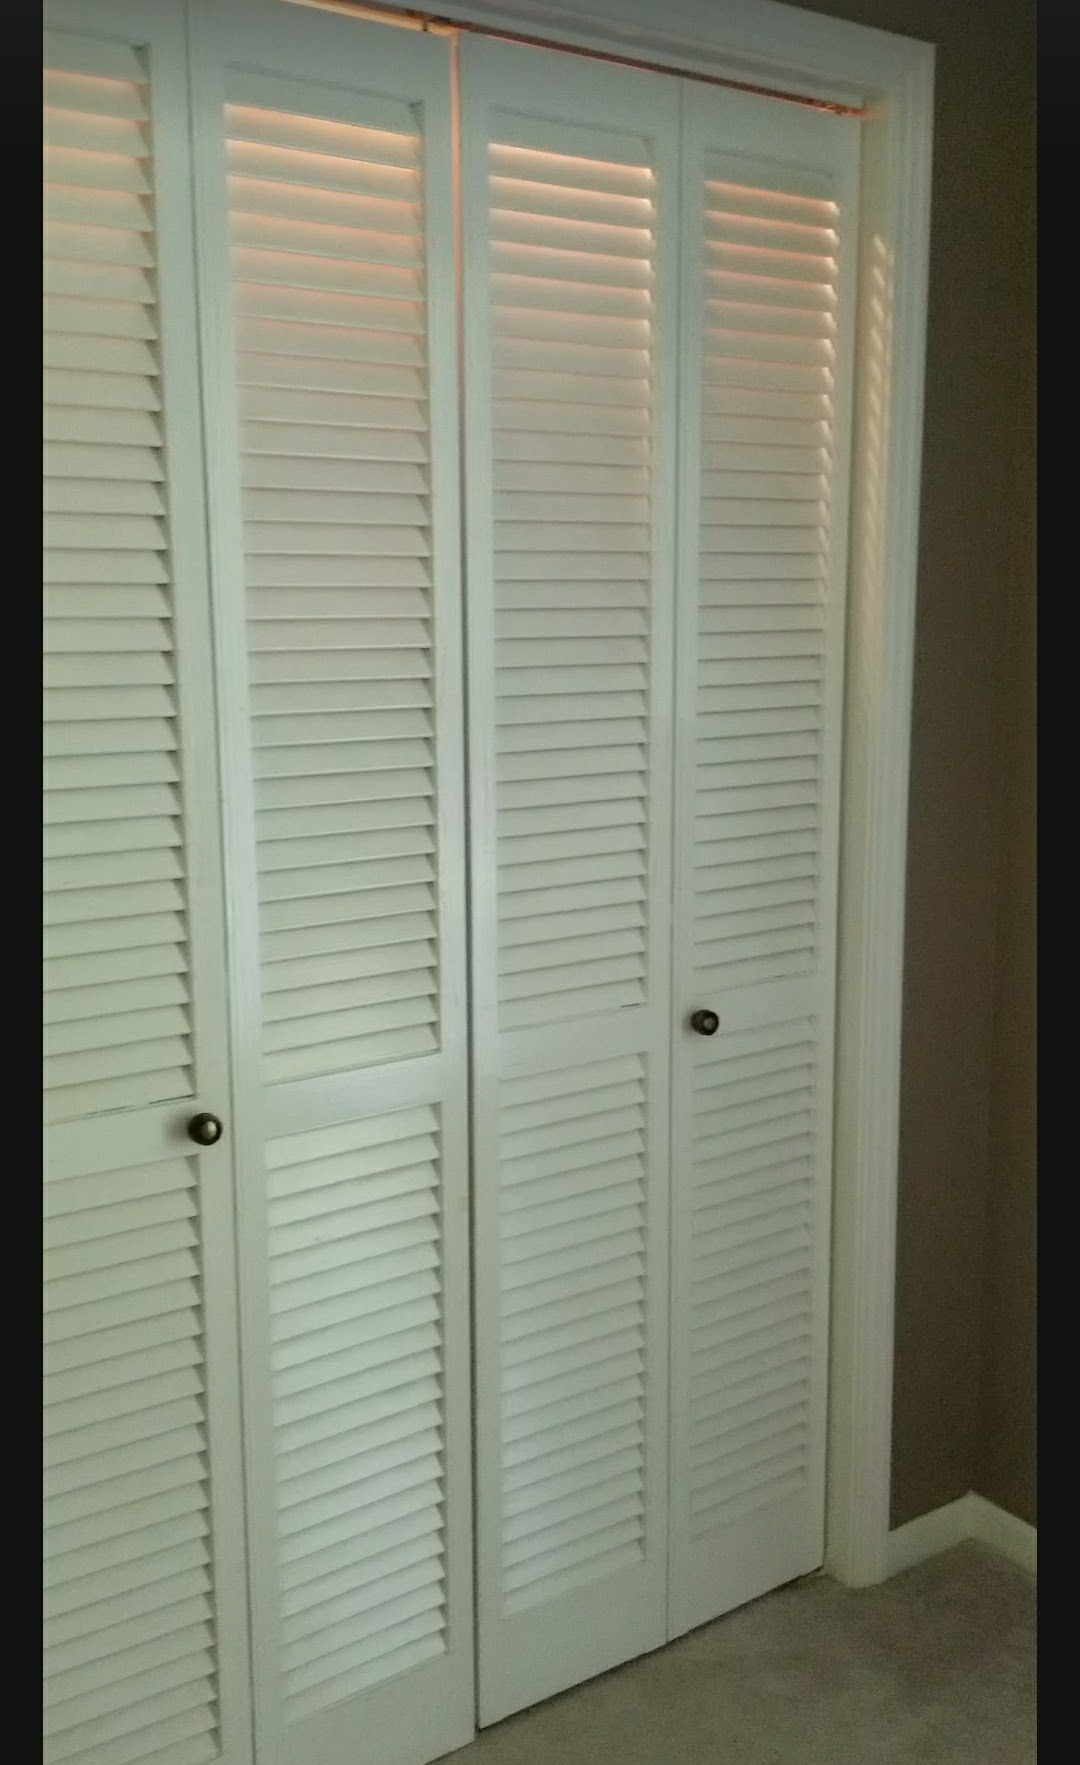 Before Farmhouse Inspired Bi Fold Closet Door Makeover.